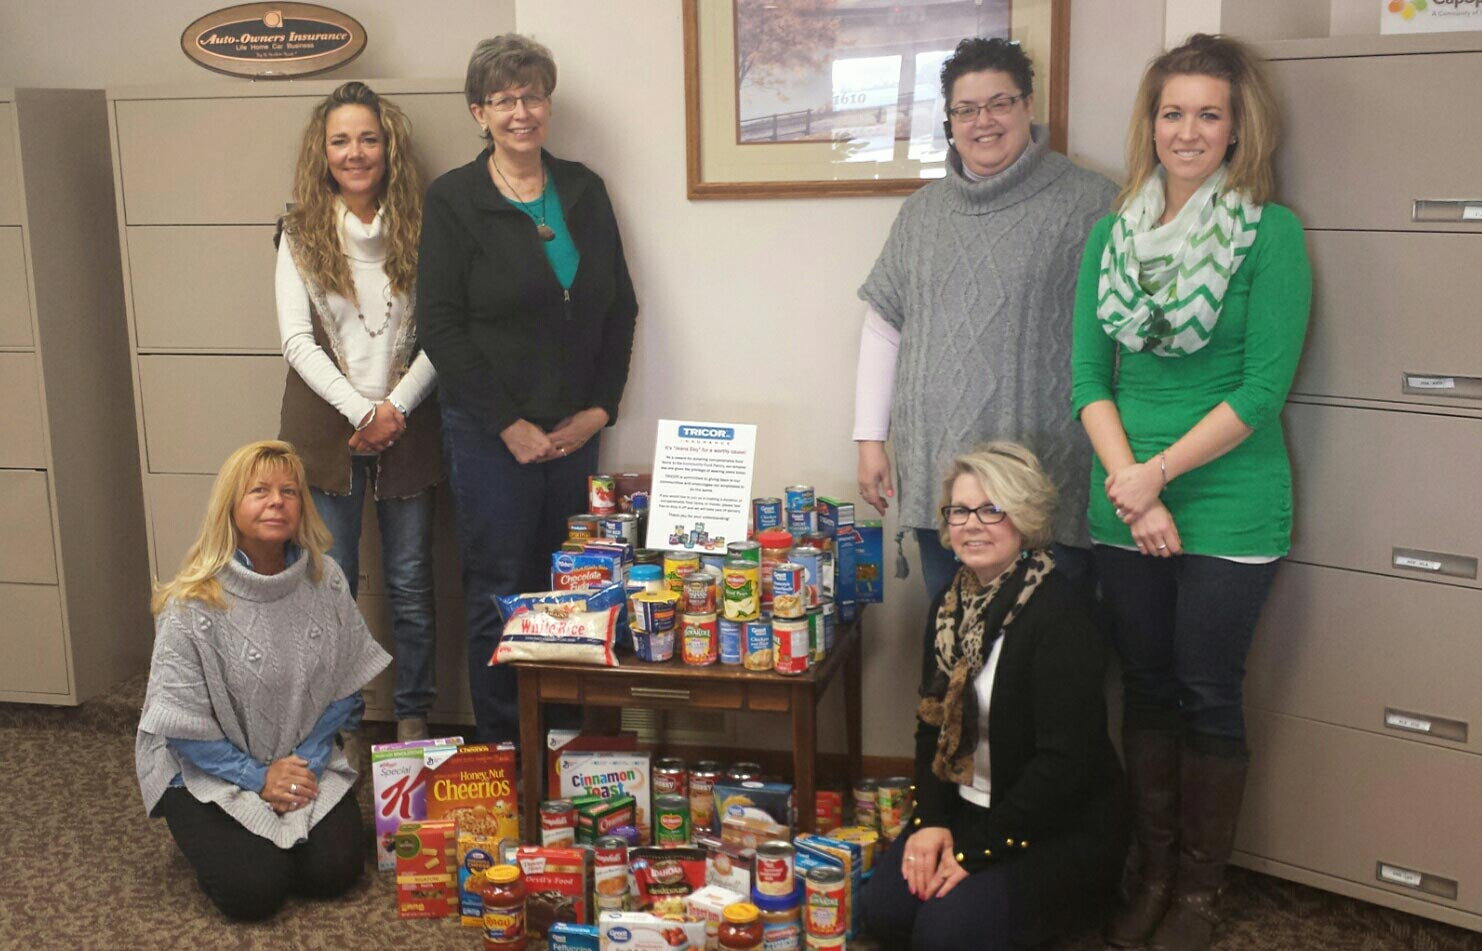 http://tricorinsurance.com/sites/tricorinsurance.com/assets/images/about-tricor/wisconsin-rapids-food-pantry.jpg